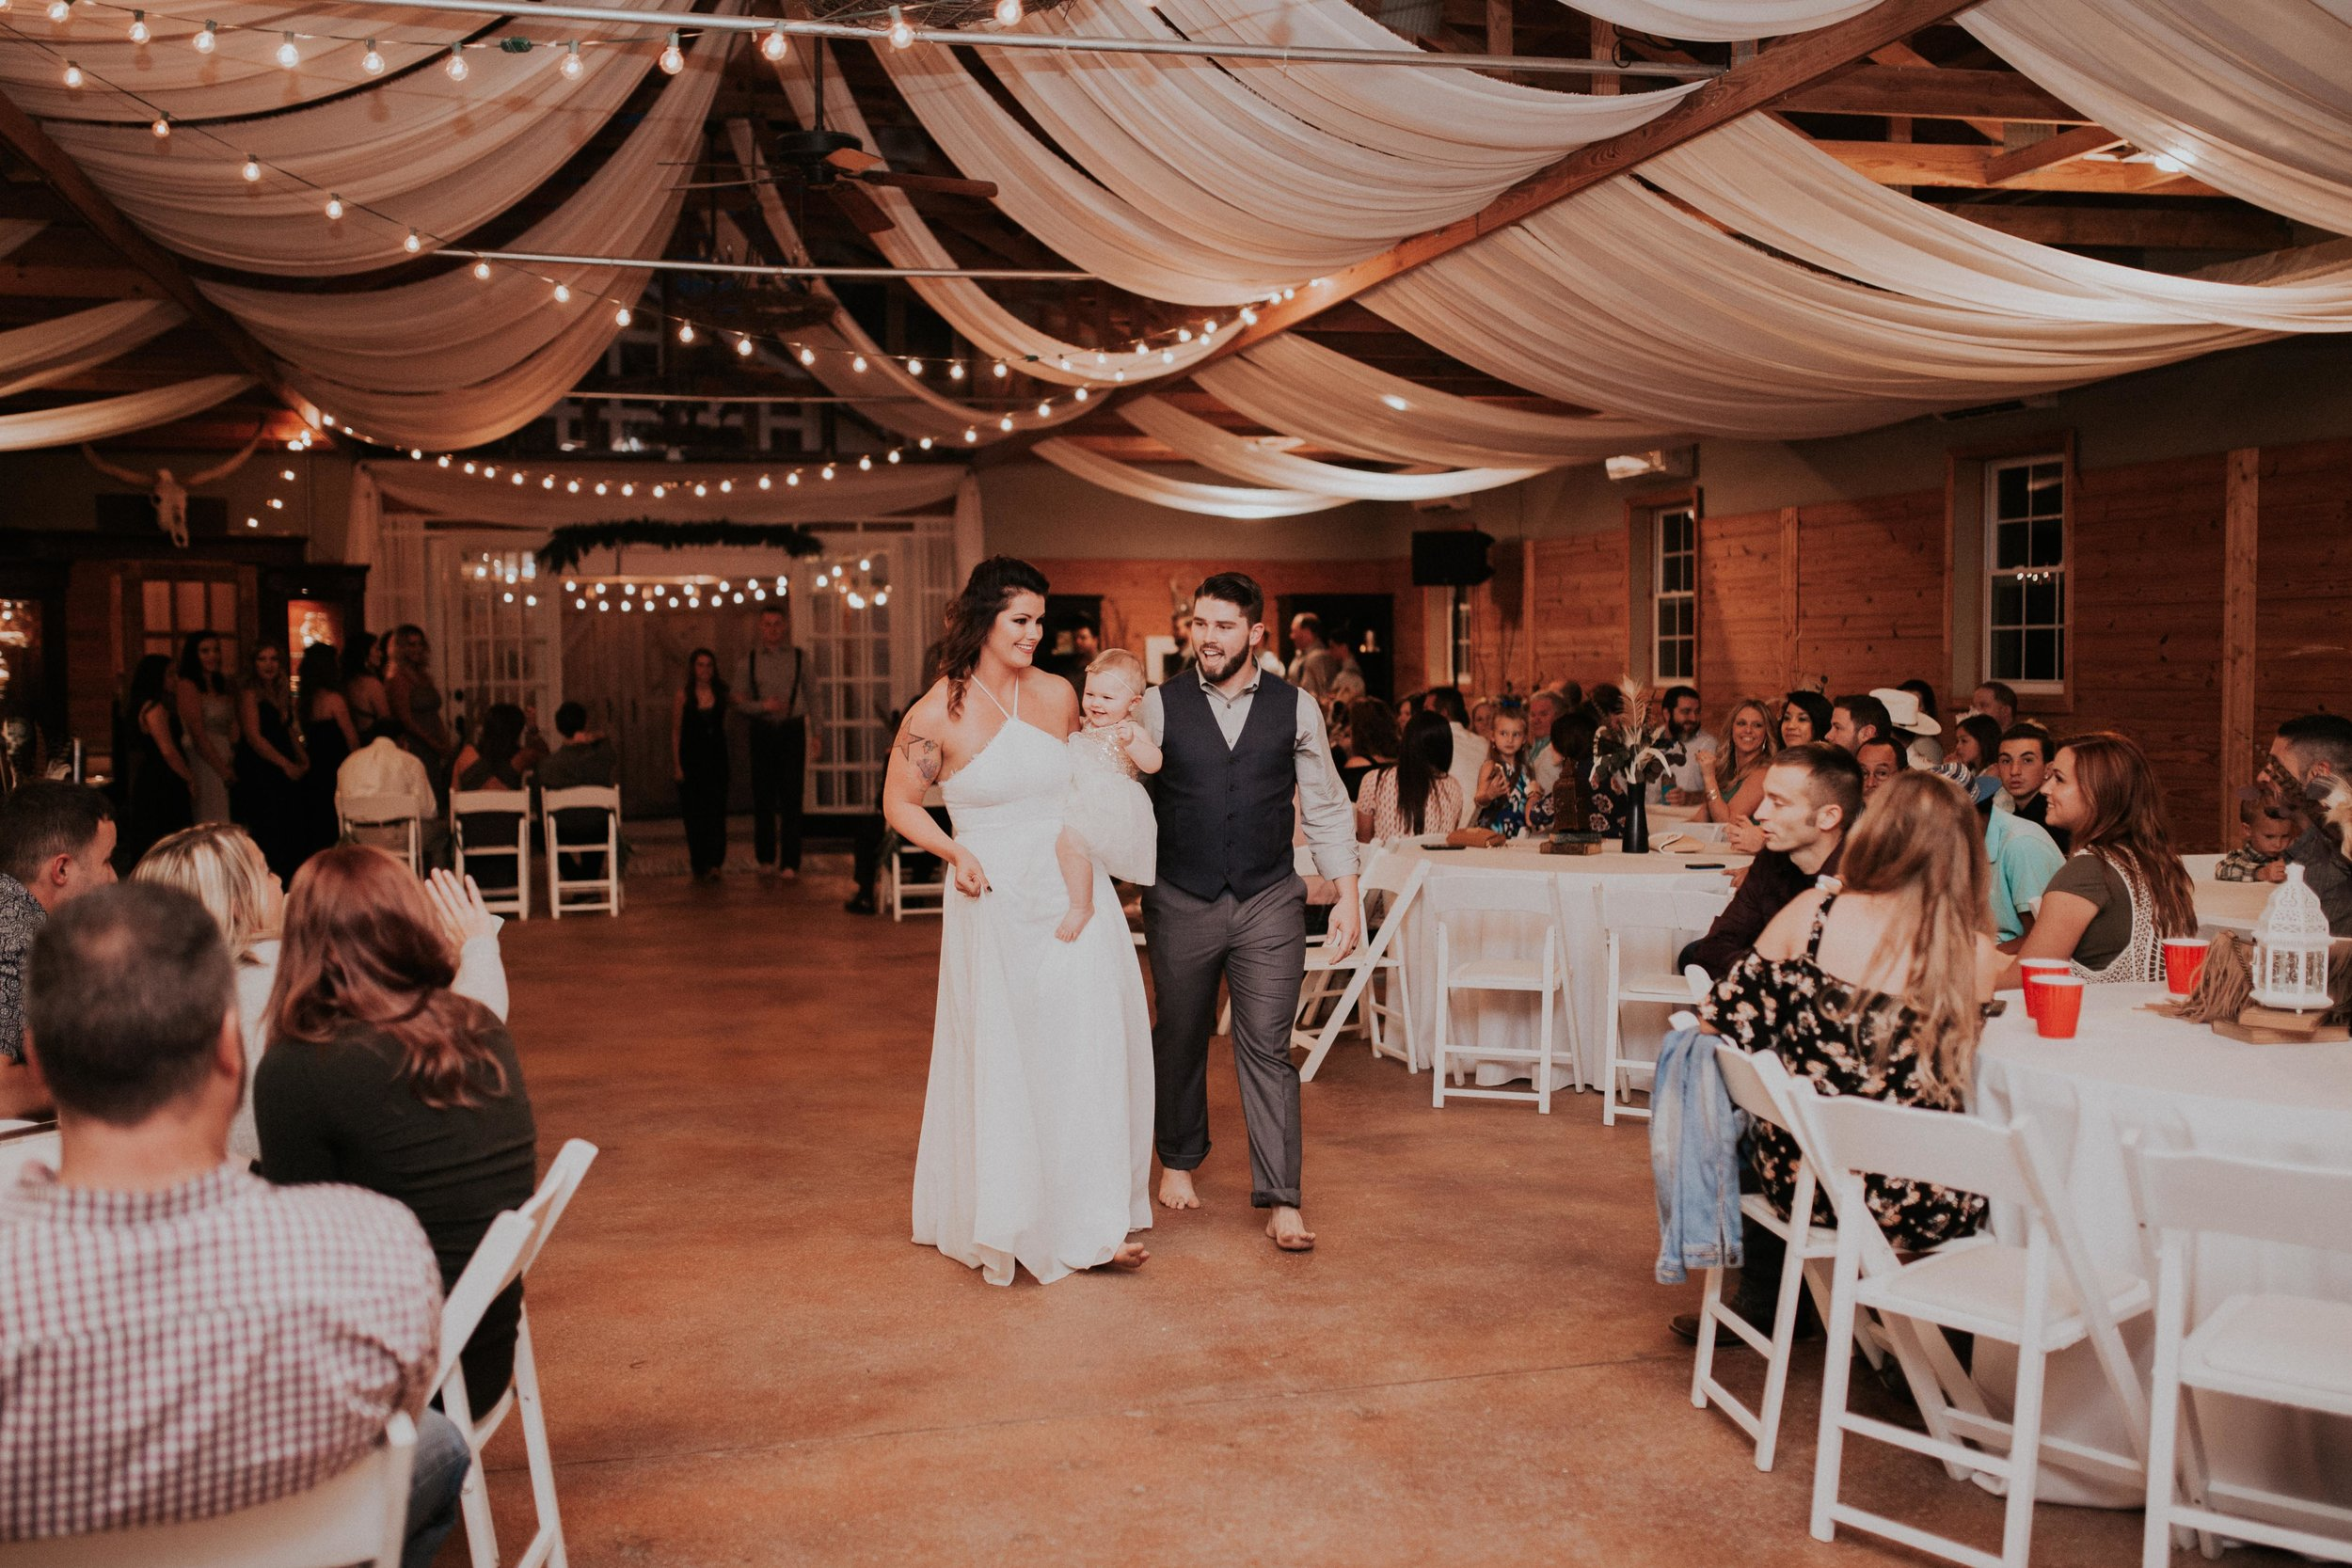 Vow Renewal in Magnolia Texas - Madeleine Frost Wedding Photographer - Sized for Blog-62.jpg